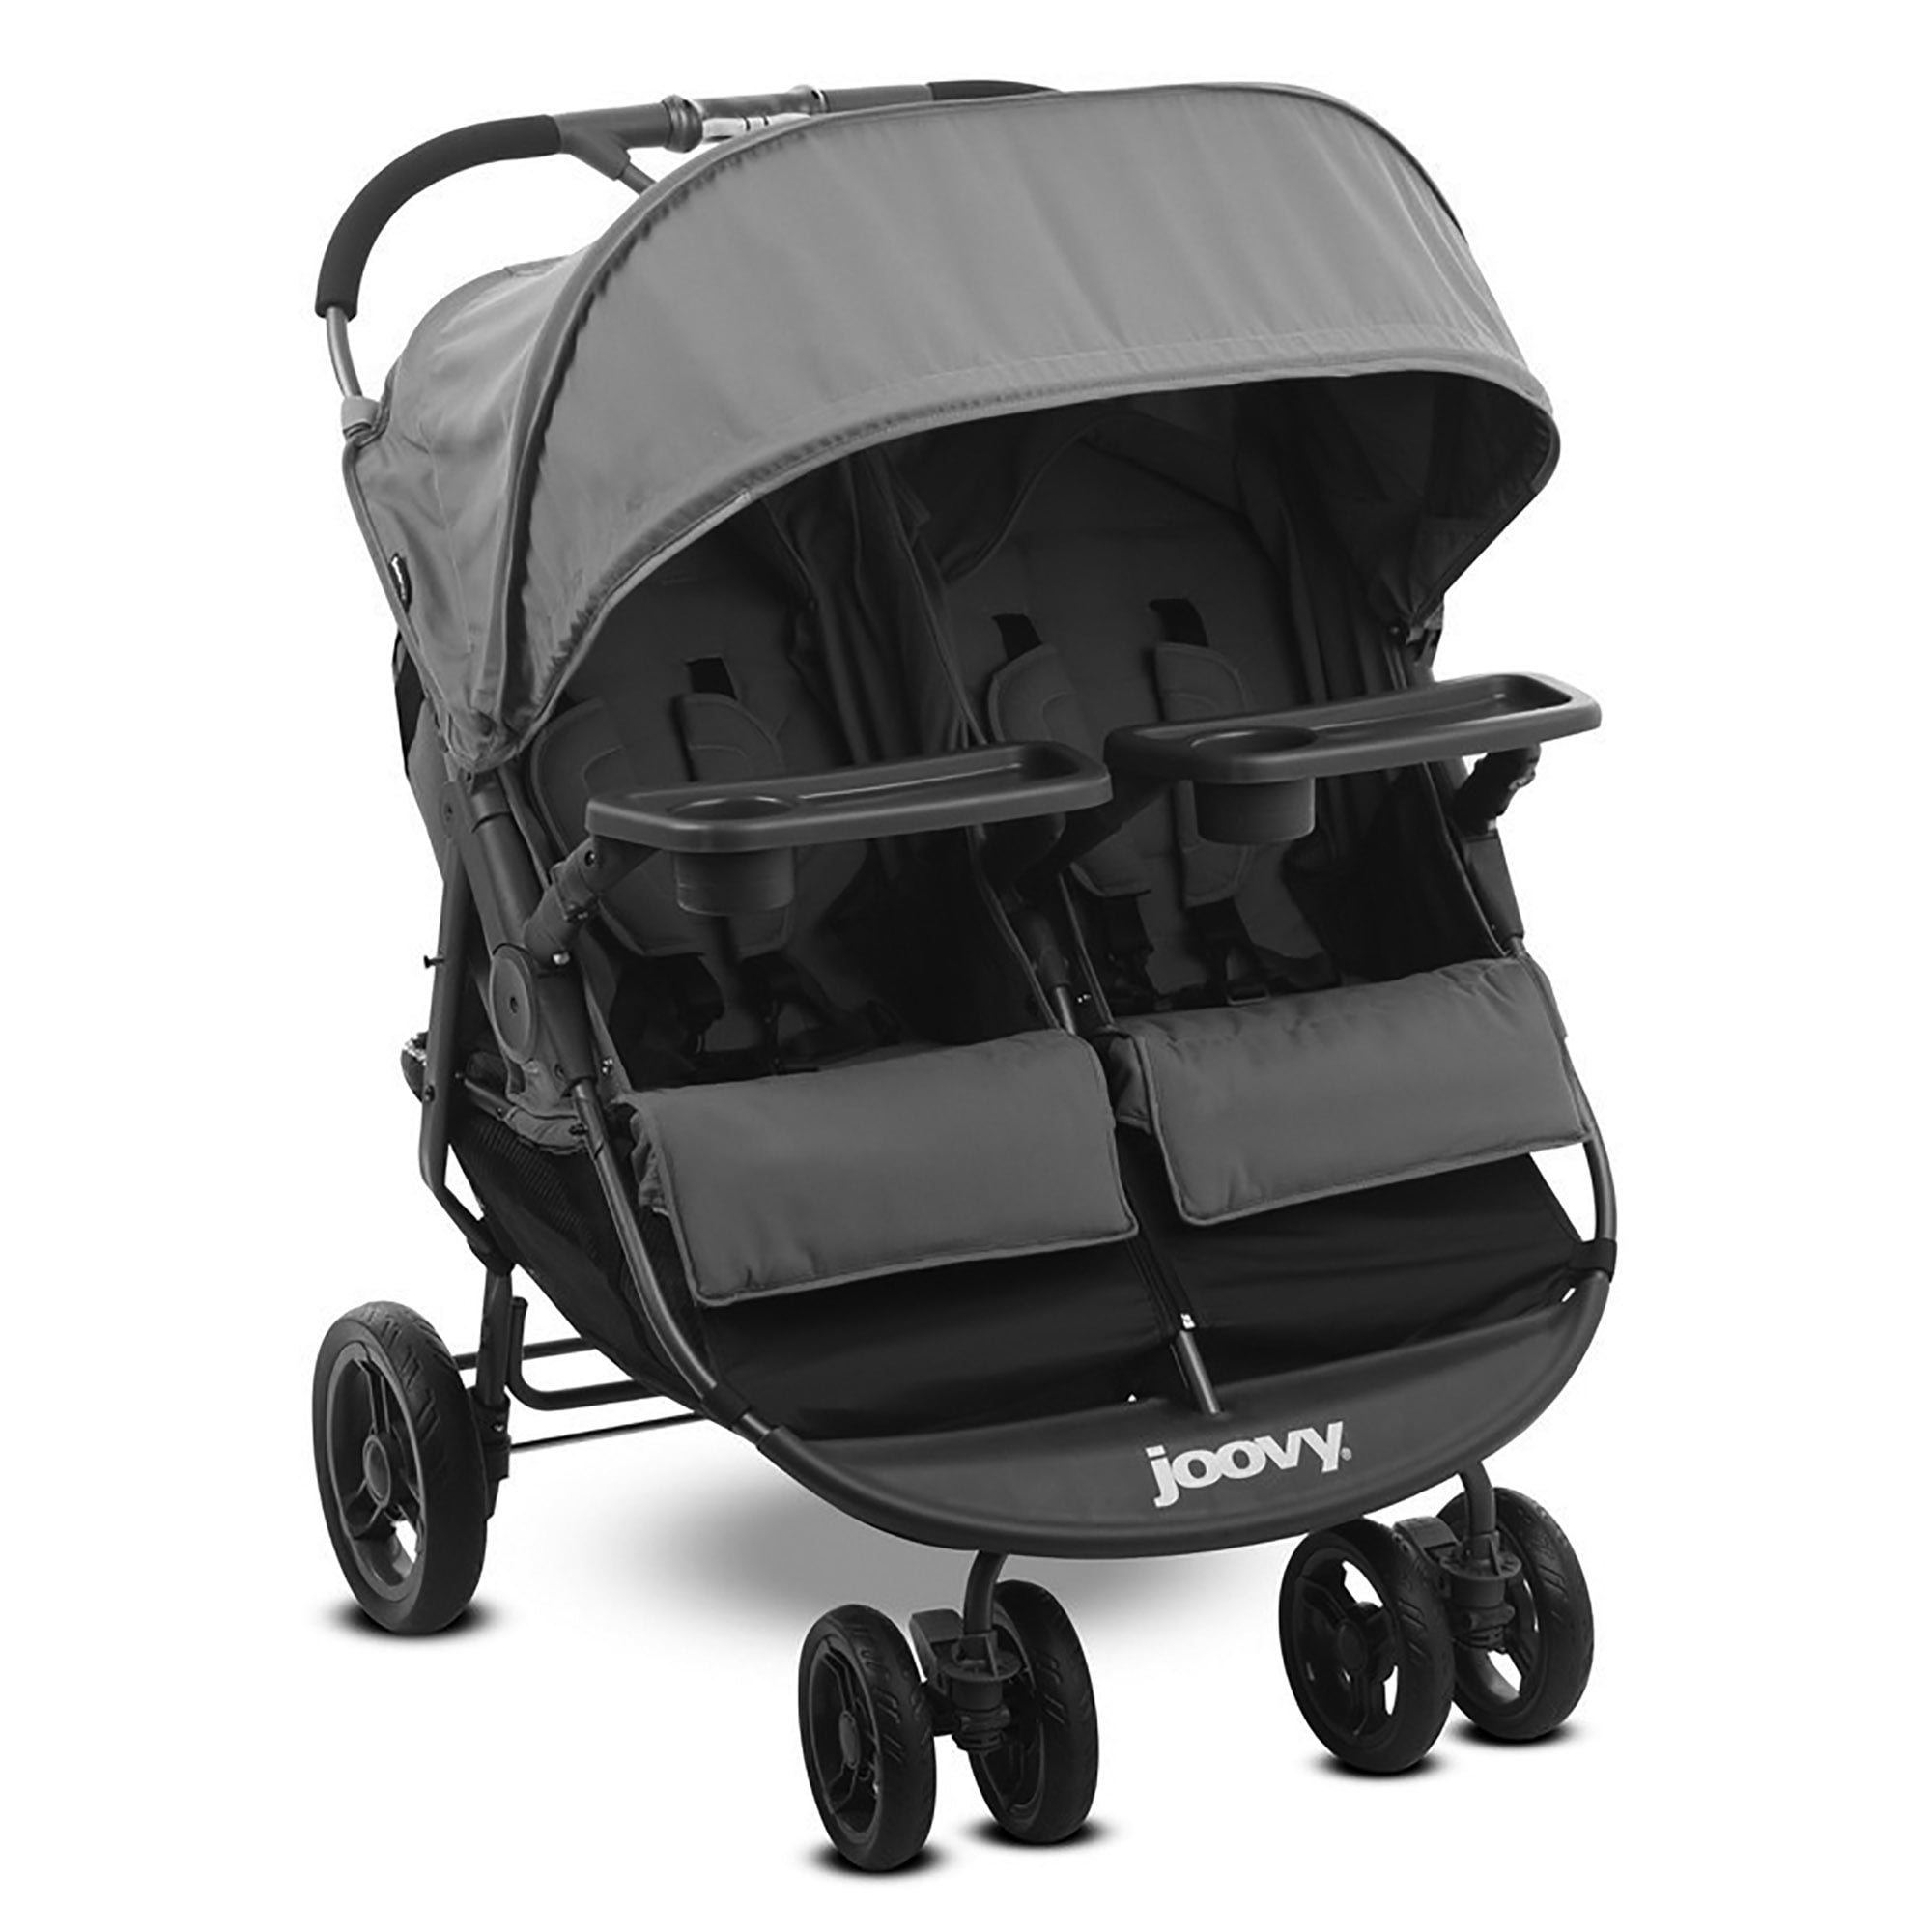 Joovy Scooter X2 Double Stroller with Snack Trays Charcoal by Joovy